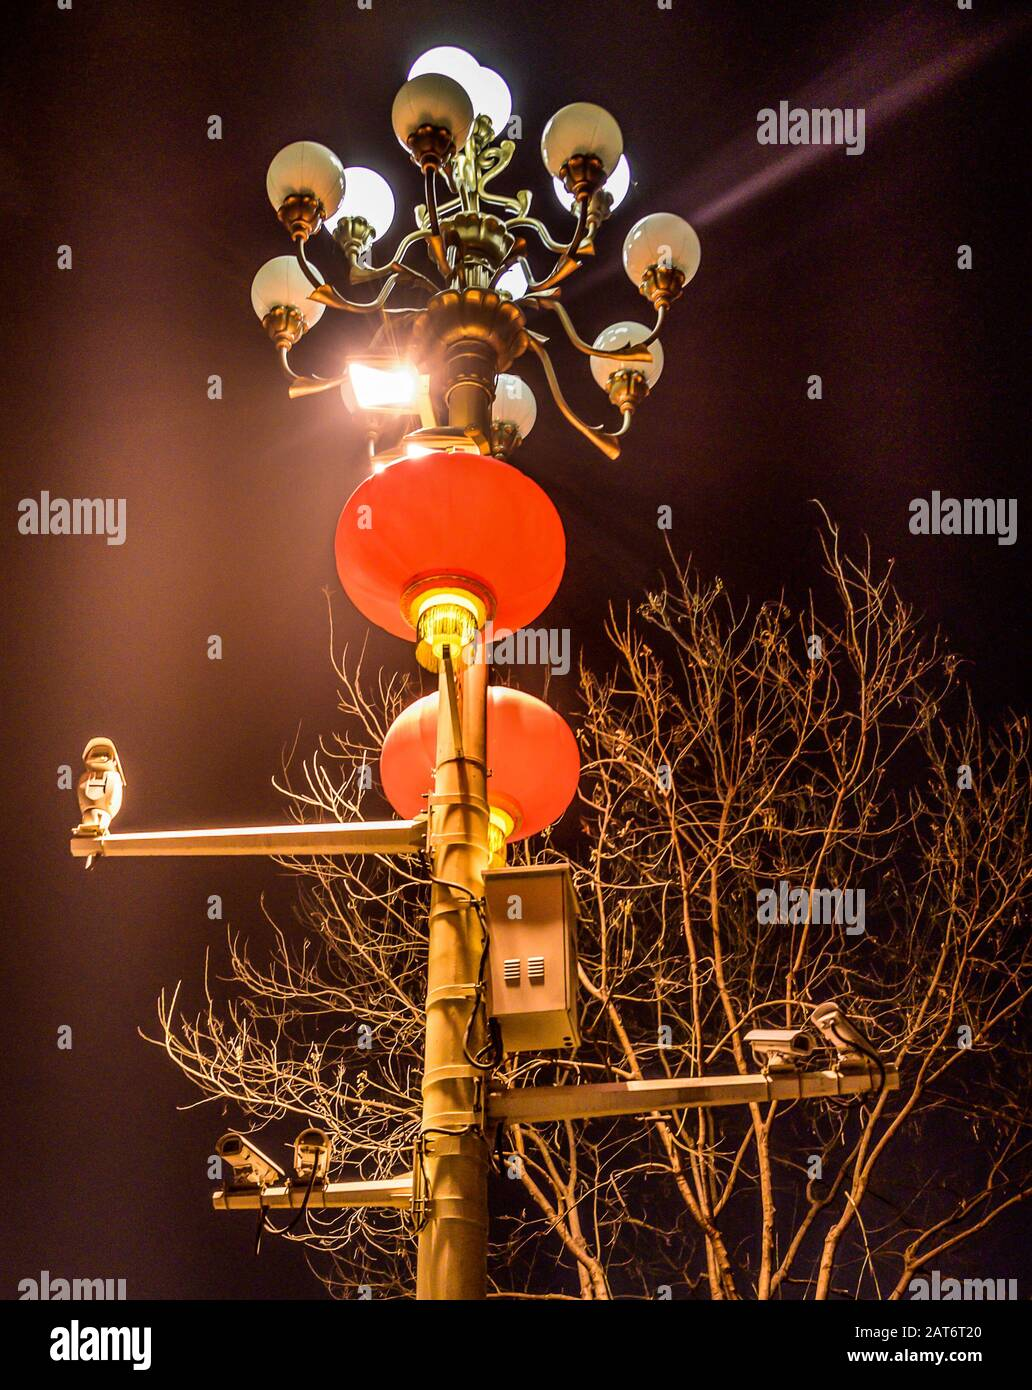 CCTV cameras on lantern pole in the capitol city of china Bejing. Concept of security, surveillance, being watched. Stock Photo